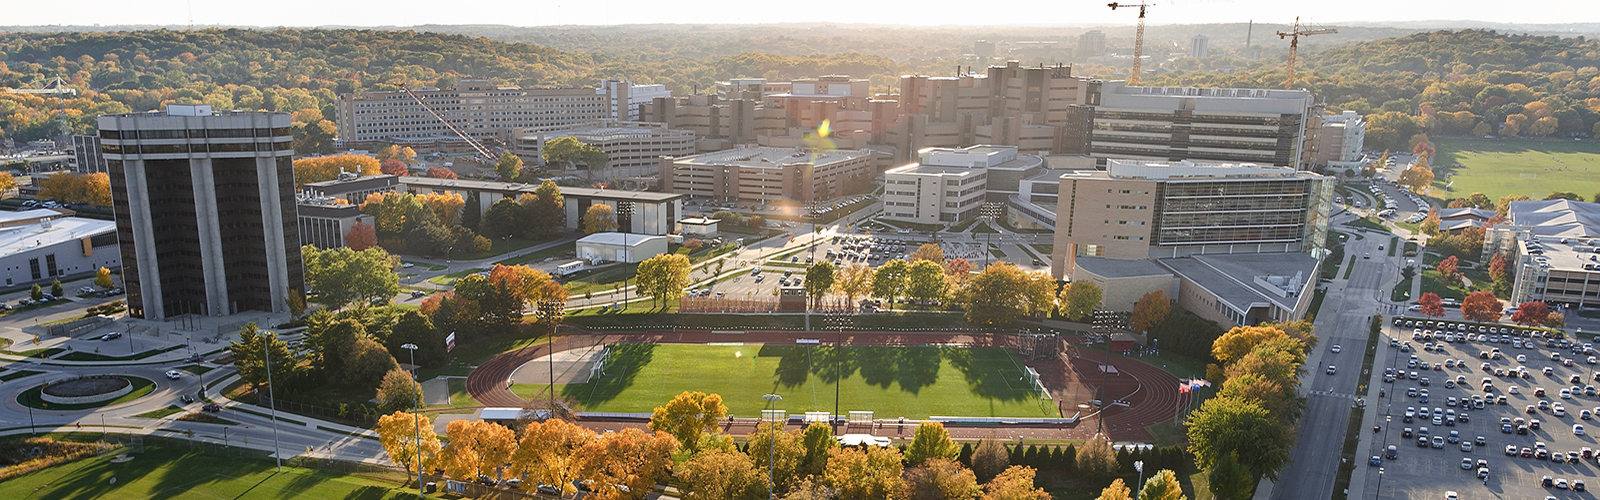 Aerial view of the western portion of the University of Wisconsin-Madison campus